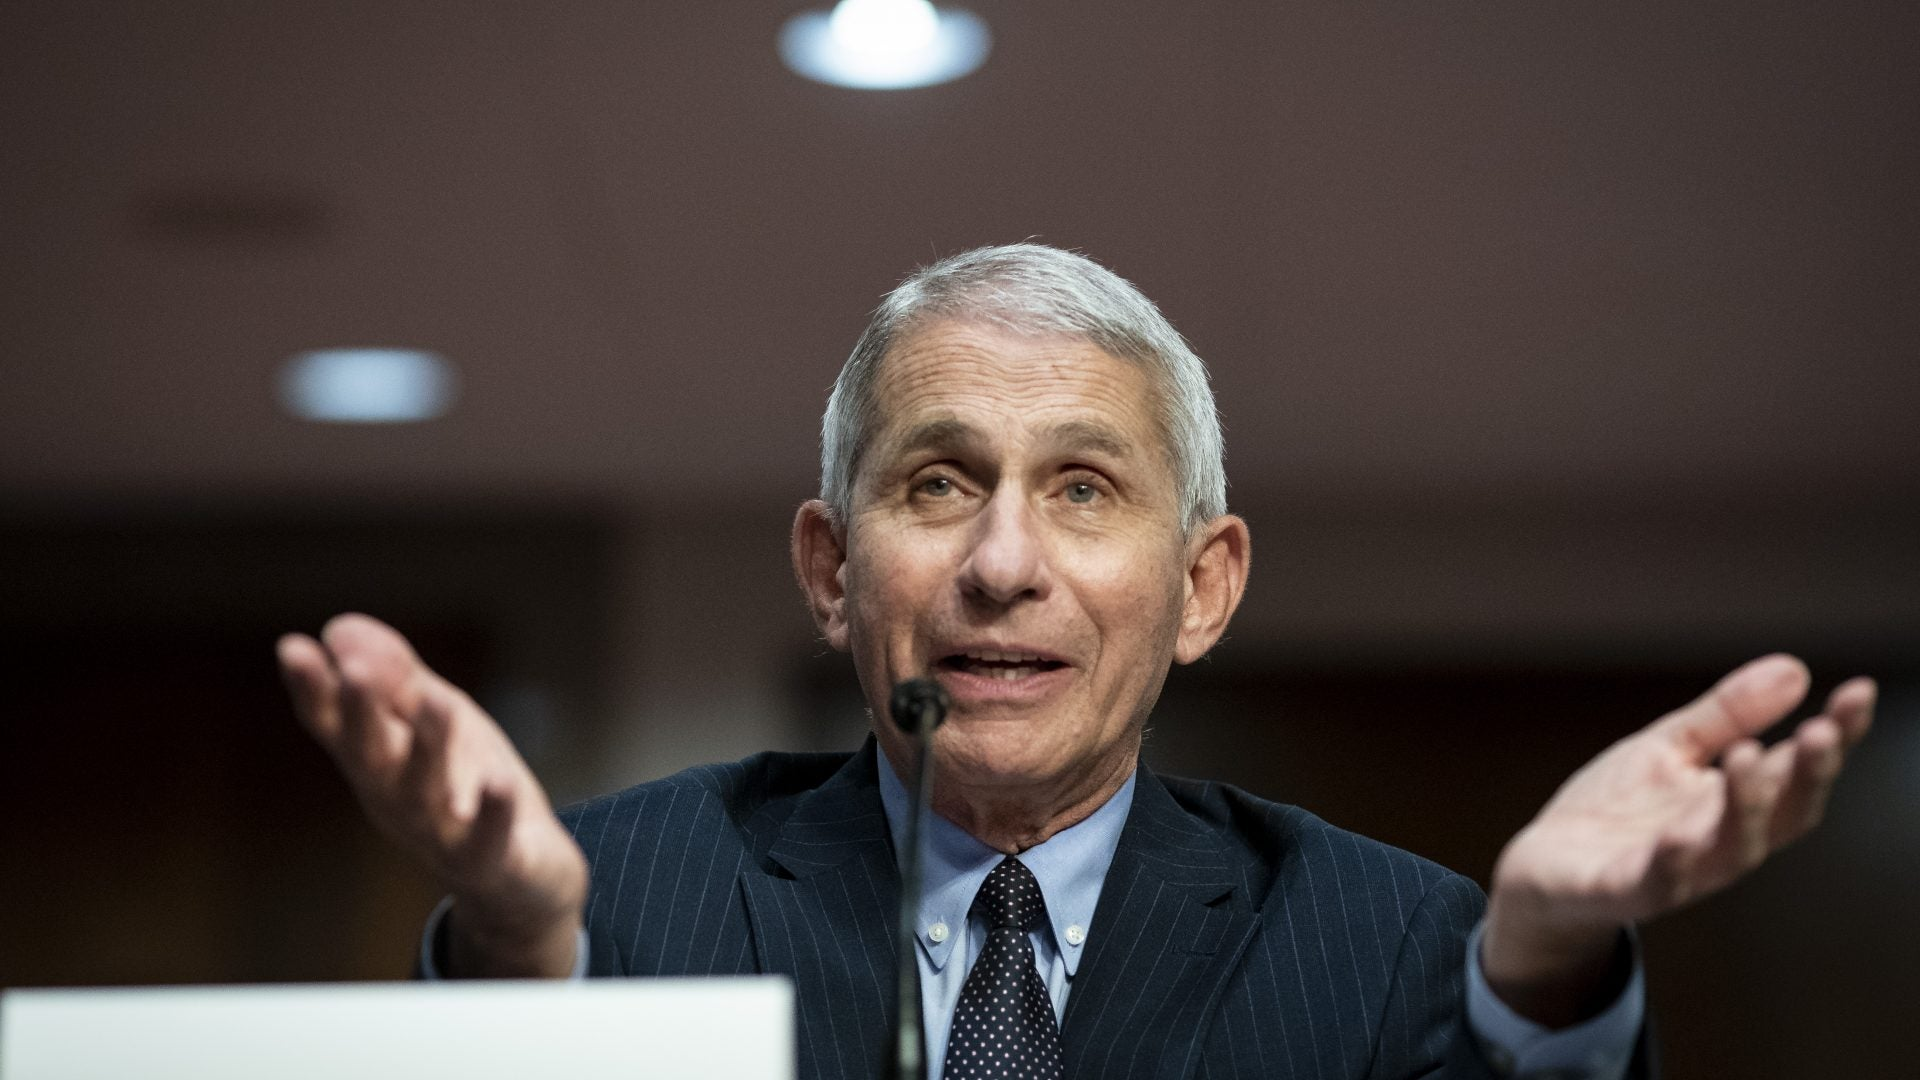 Fauci Responds To Trump's Problematic Tweets About The Coronavirus